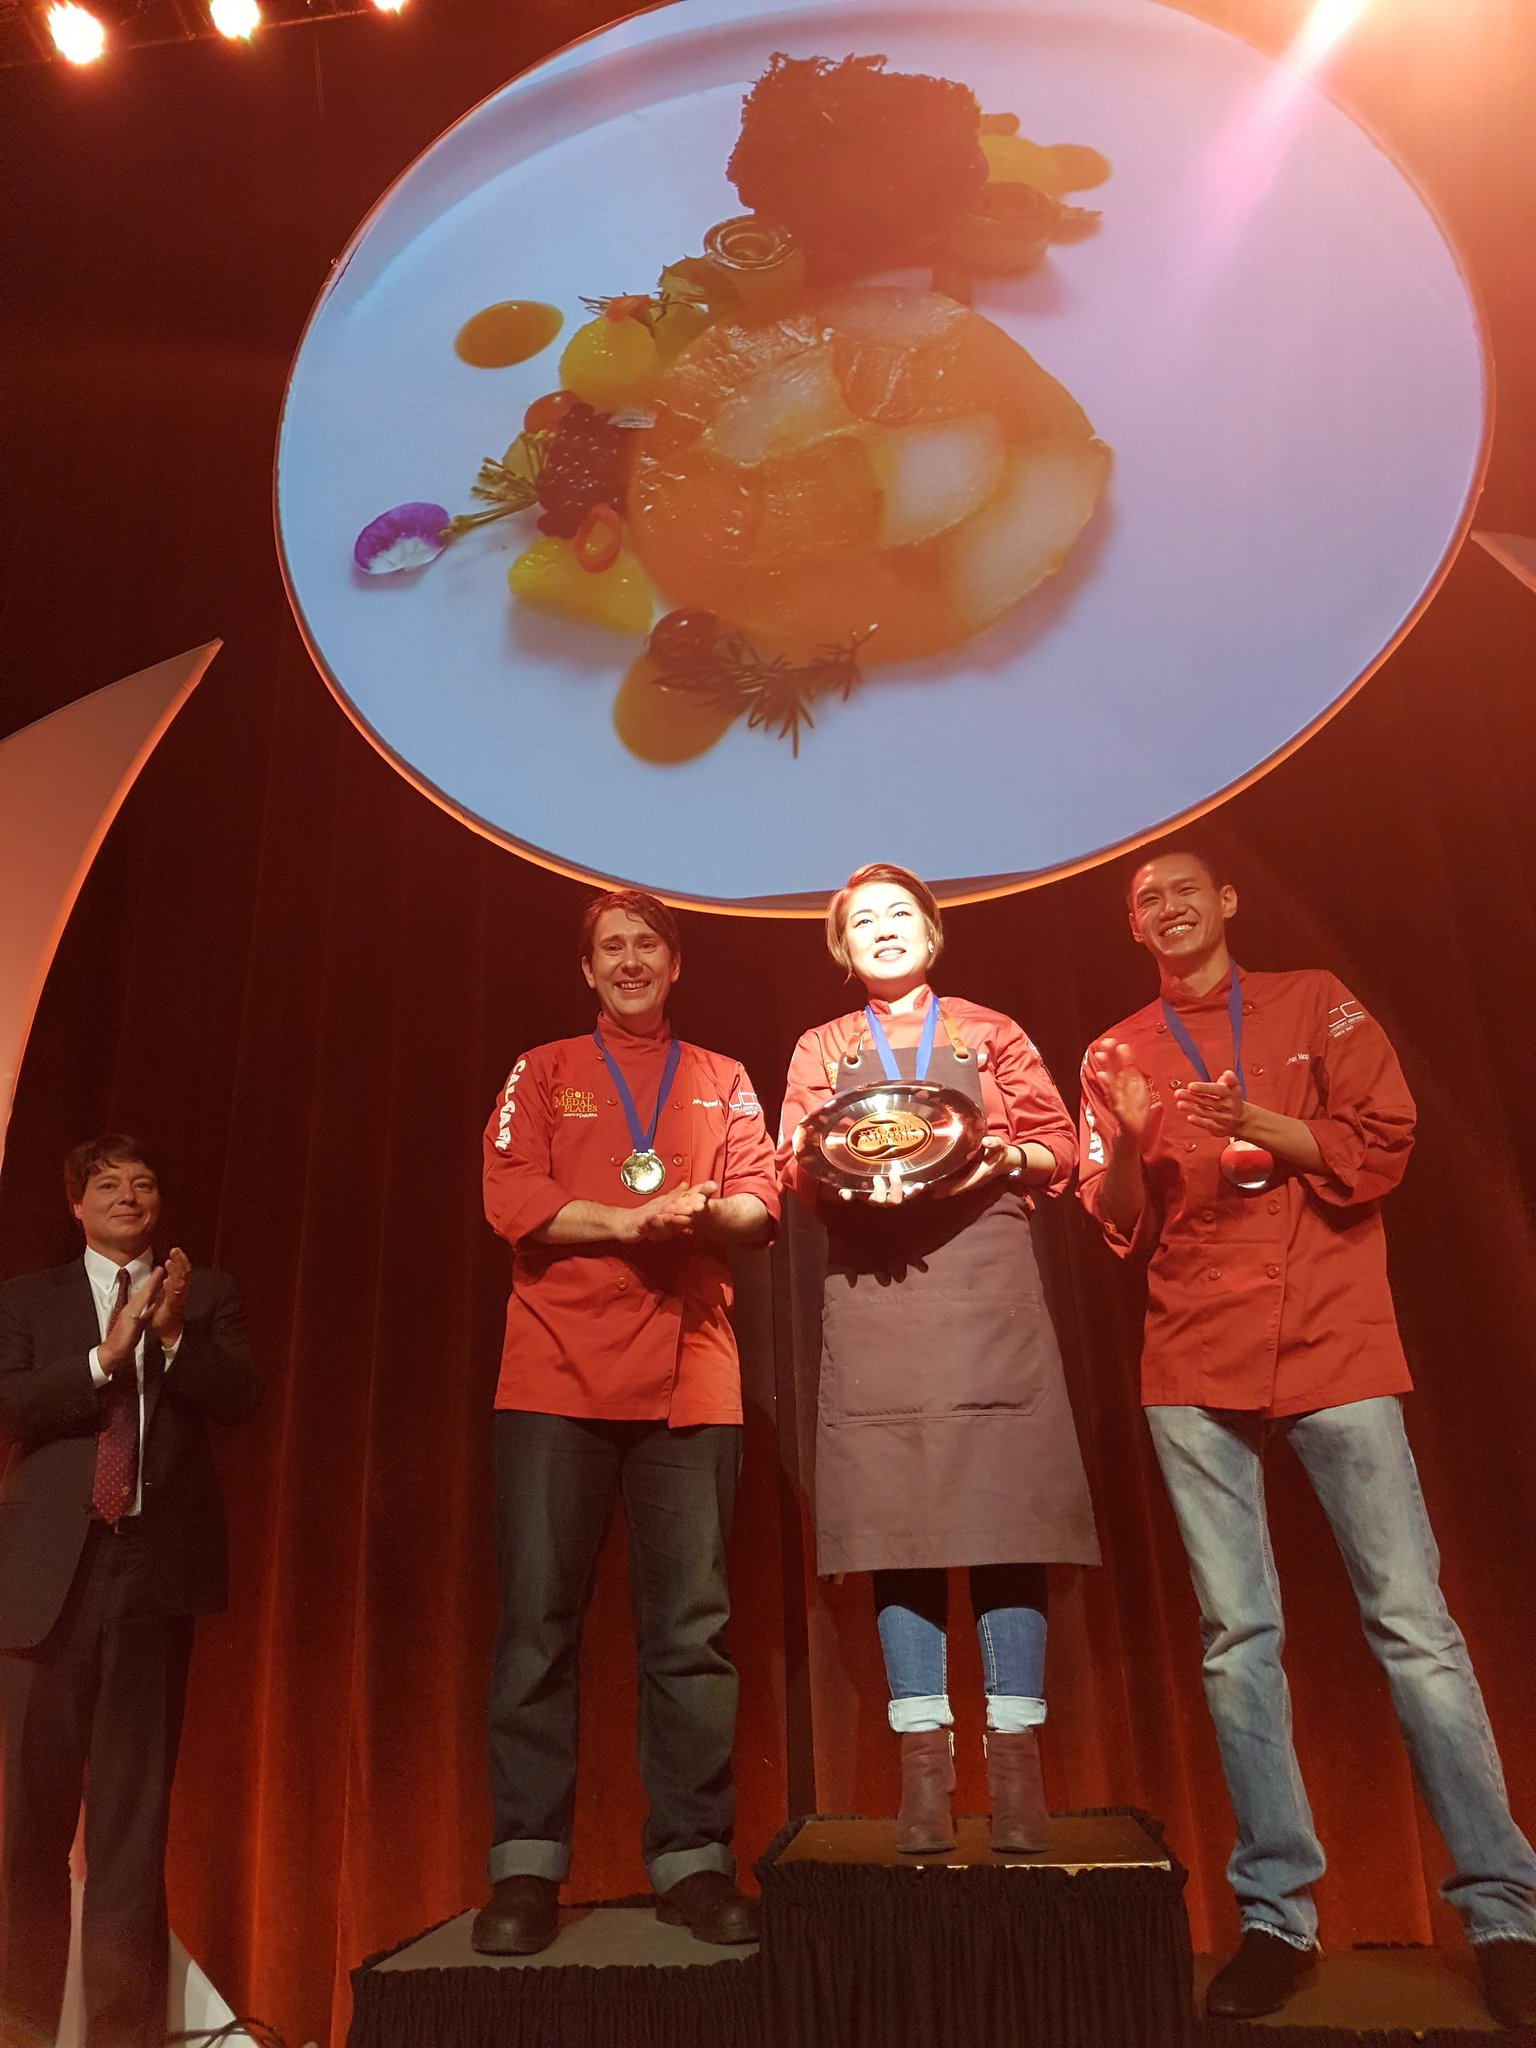 🏅 Podium finishers at #GMPCalgary: GOLD @Geenie52, silver @chefjohnmacneil, bronze @chefmnop. Congratulations! https://t.co/lYJW9CagzF